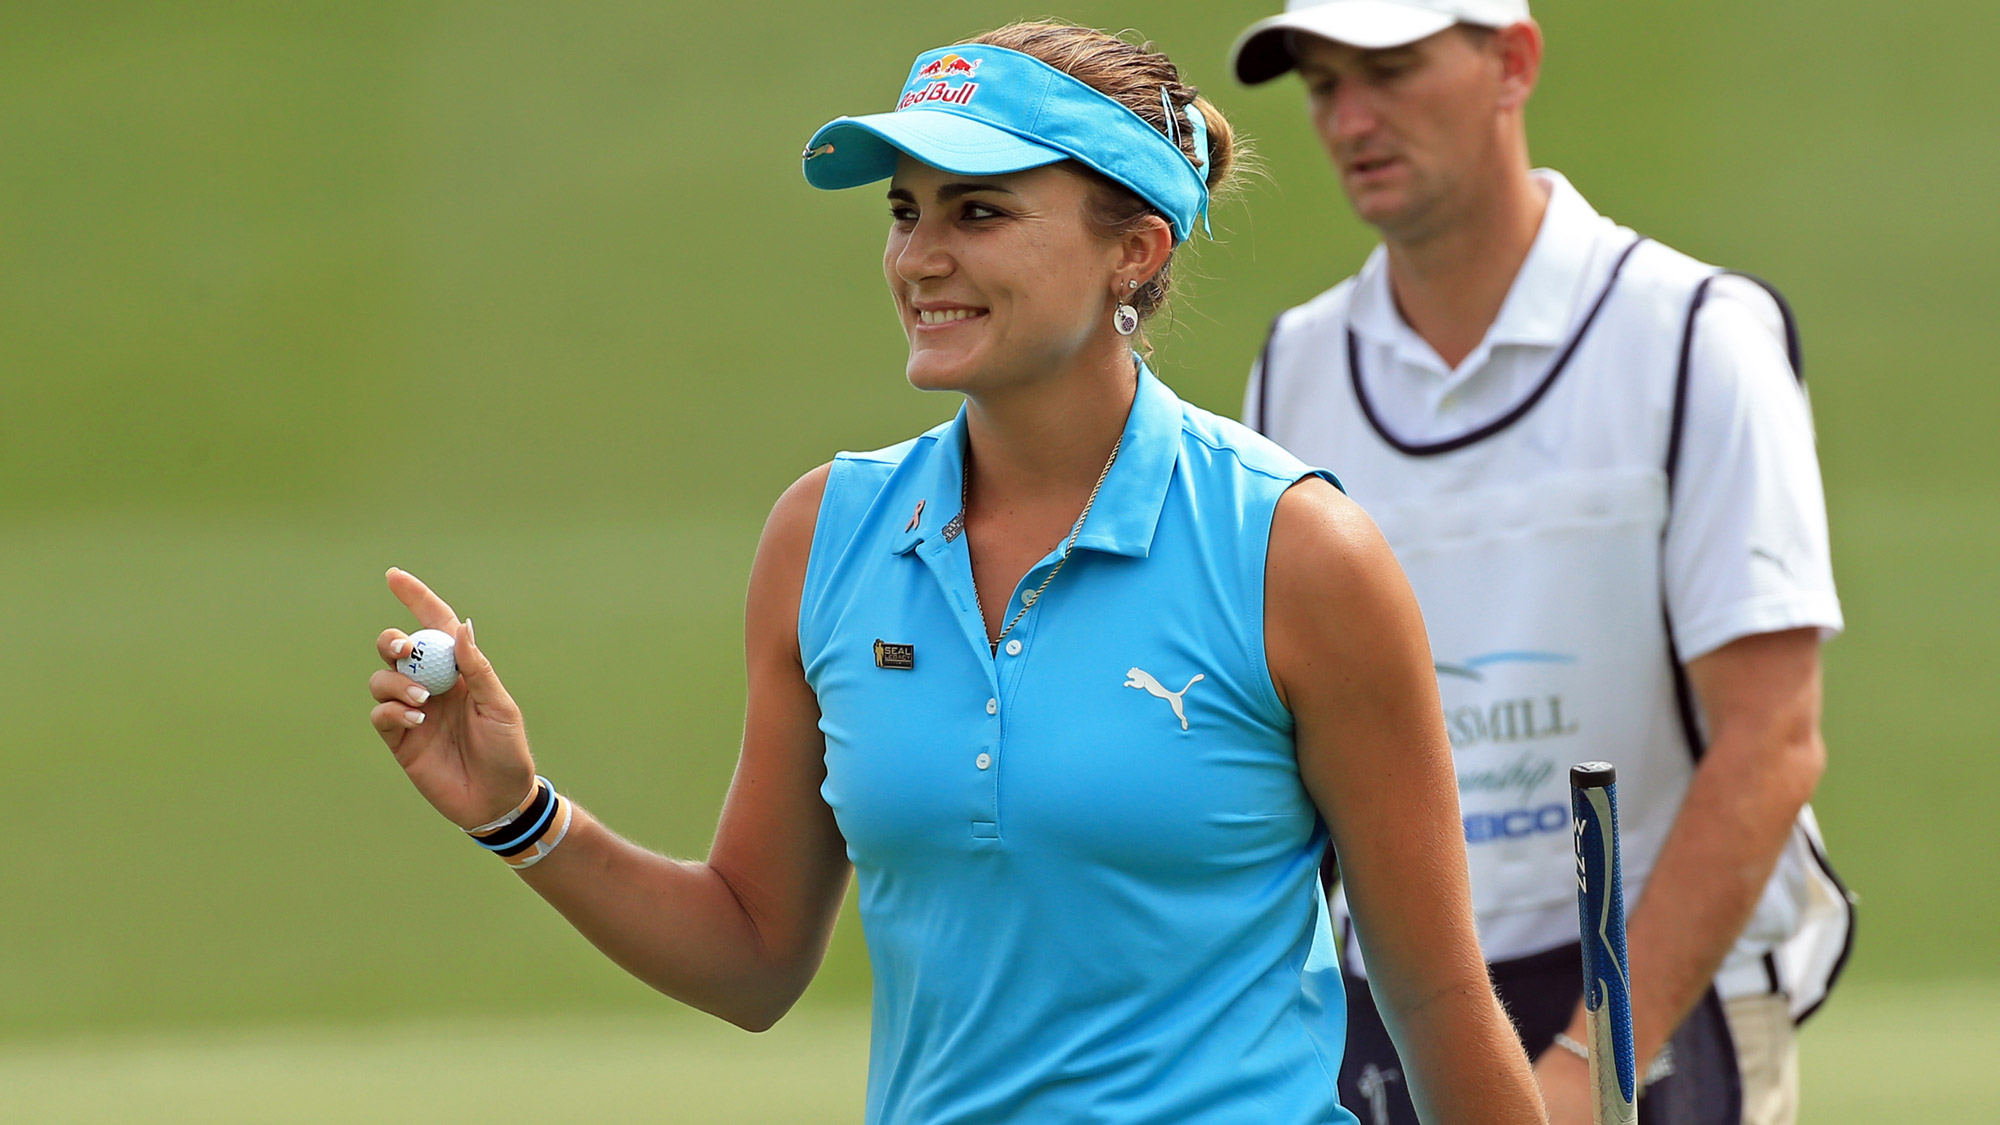 Lexi Thompson After a Birdie at Kingsmill Championship